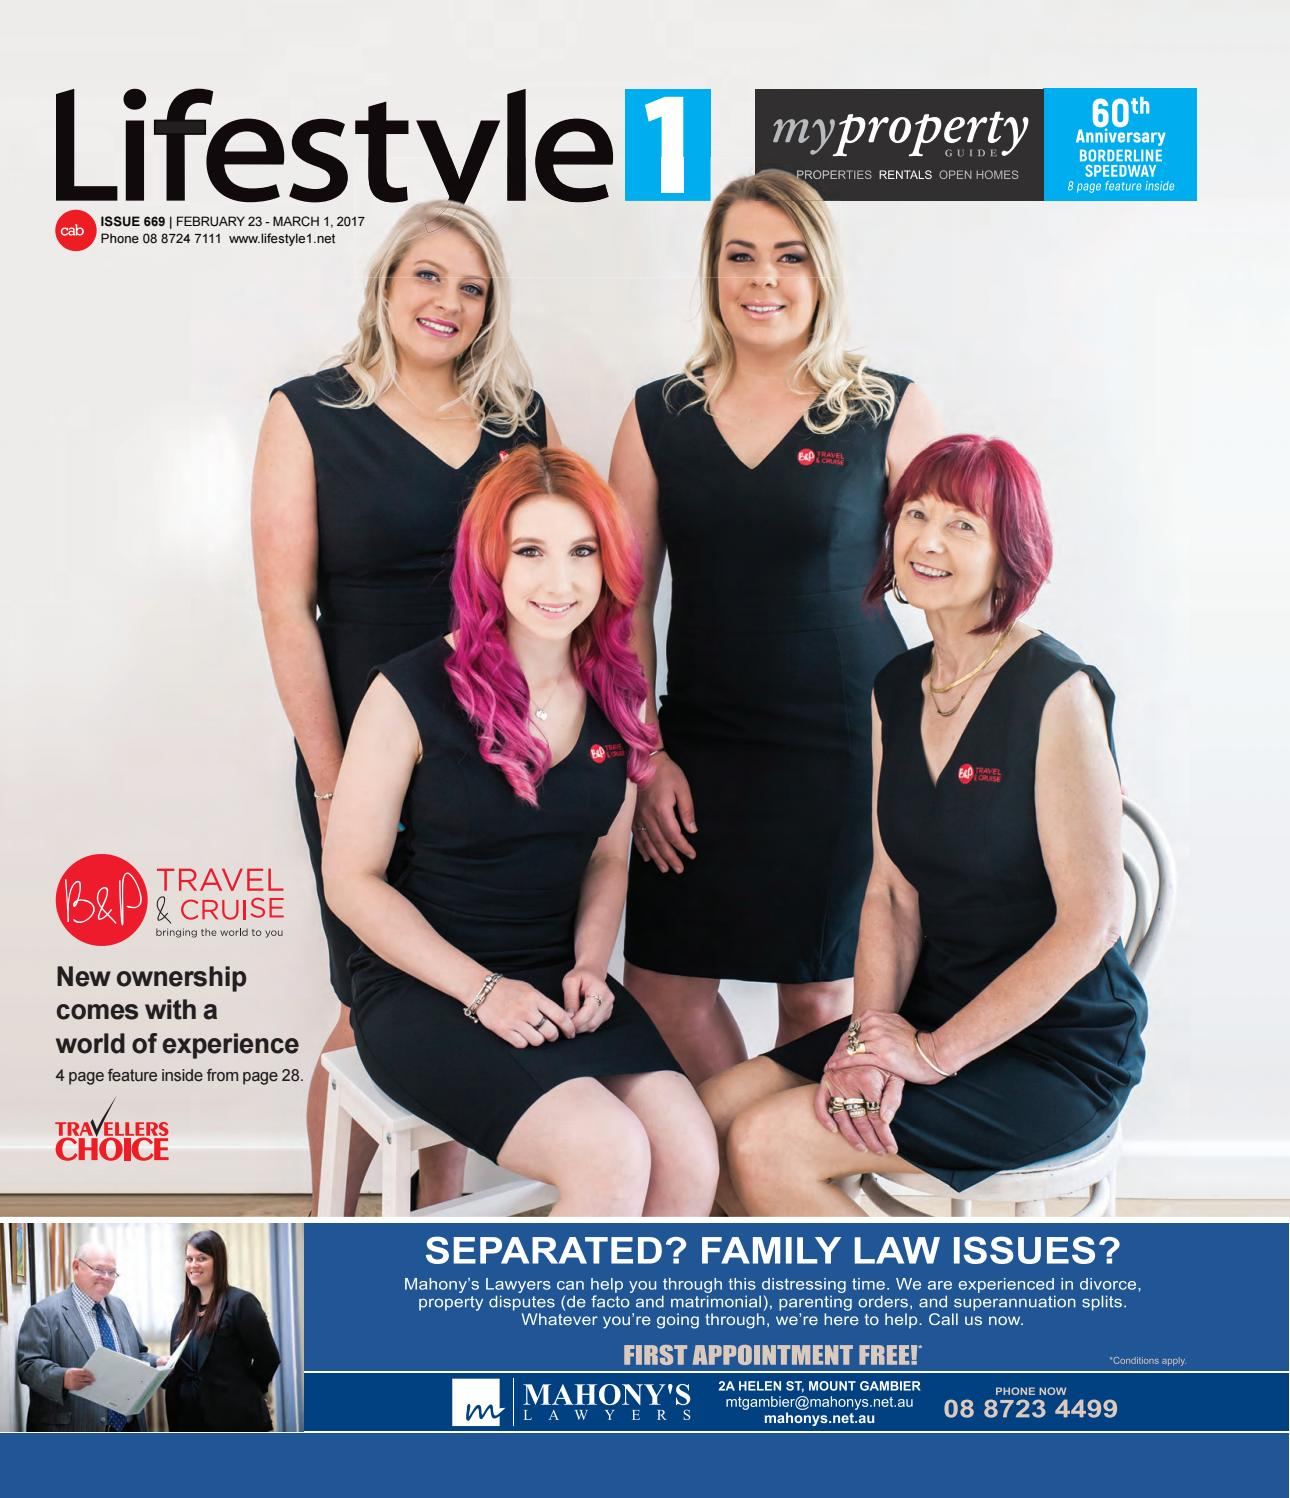 Lifestyle 1 issue 669 by Lifestyle1 issuu